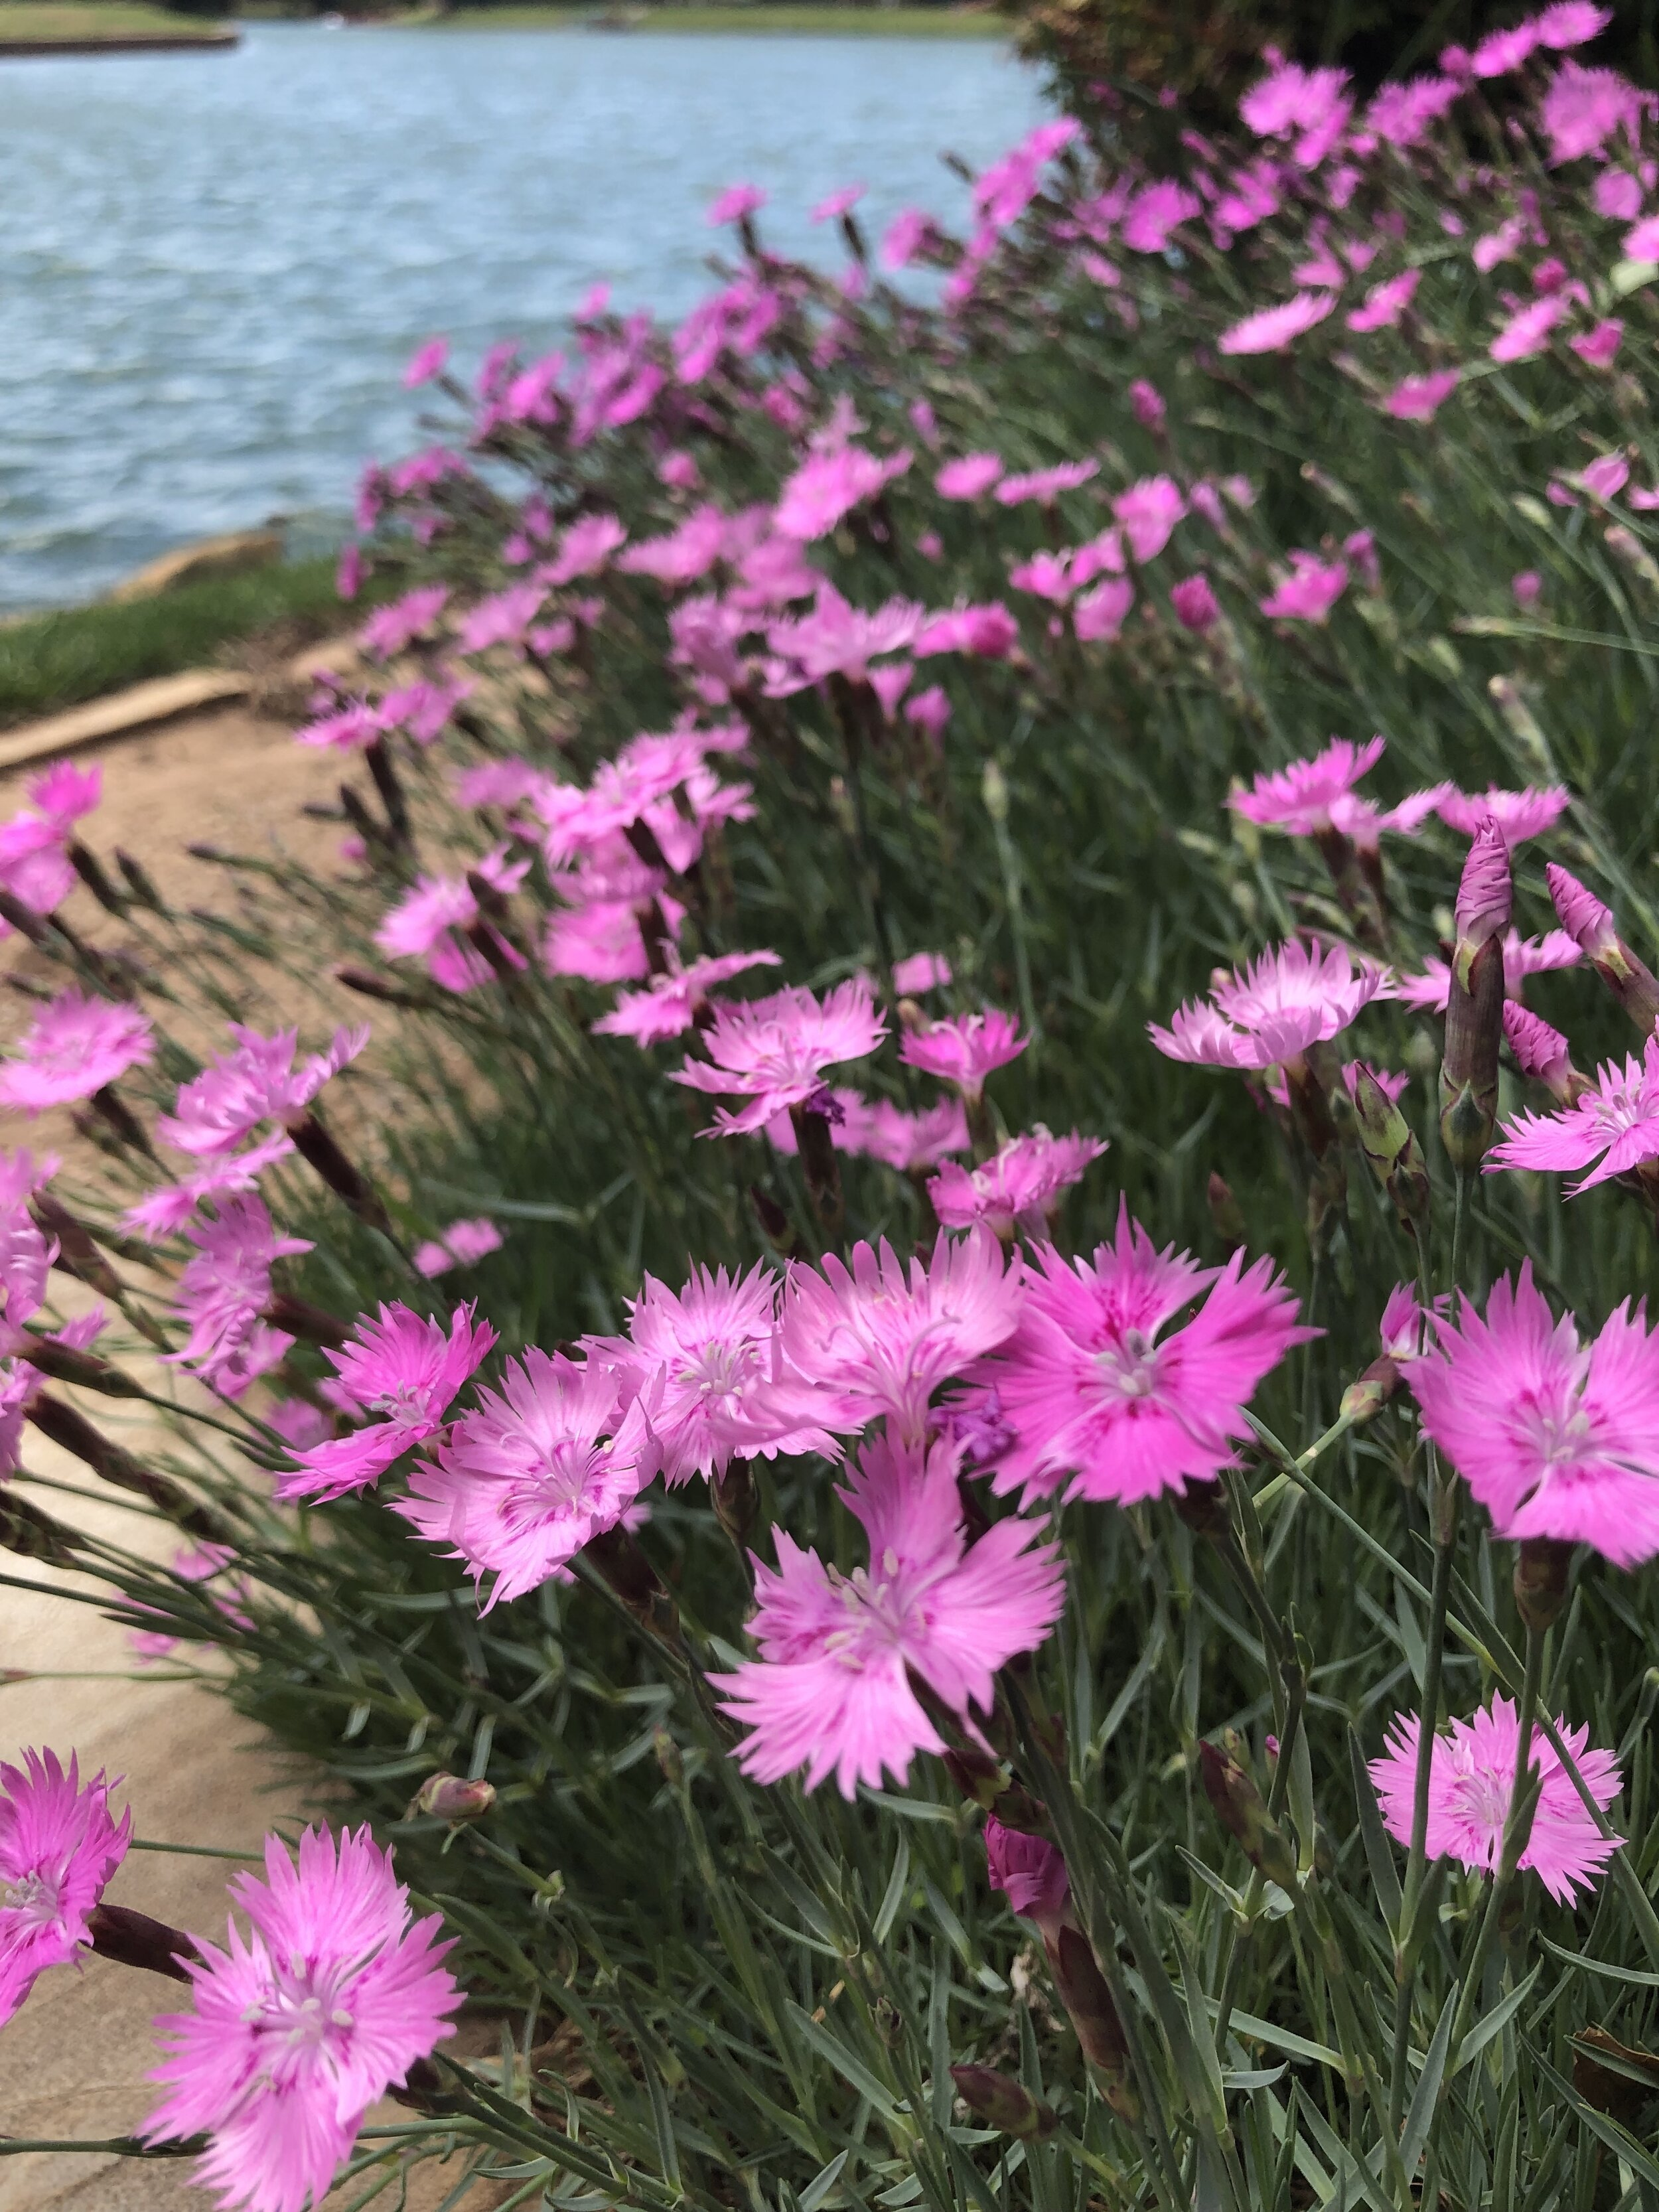 Plant perennials in the fall for great early blooms next spring.